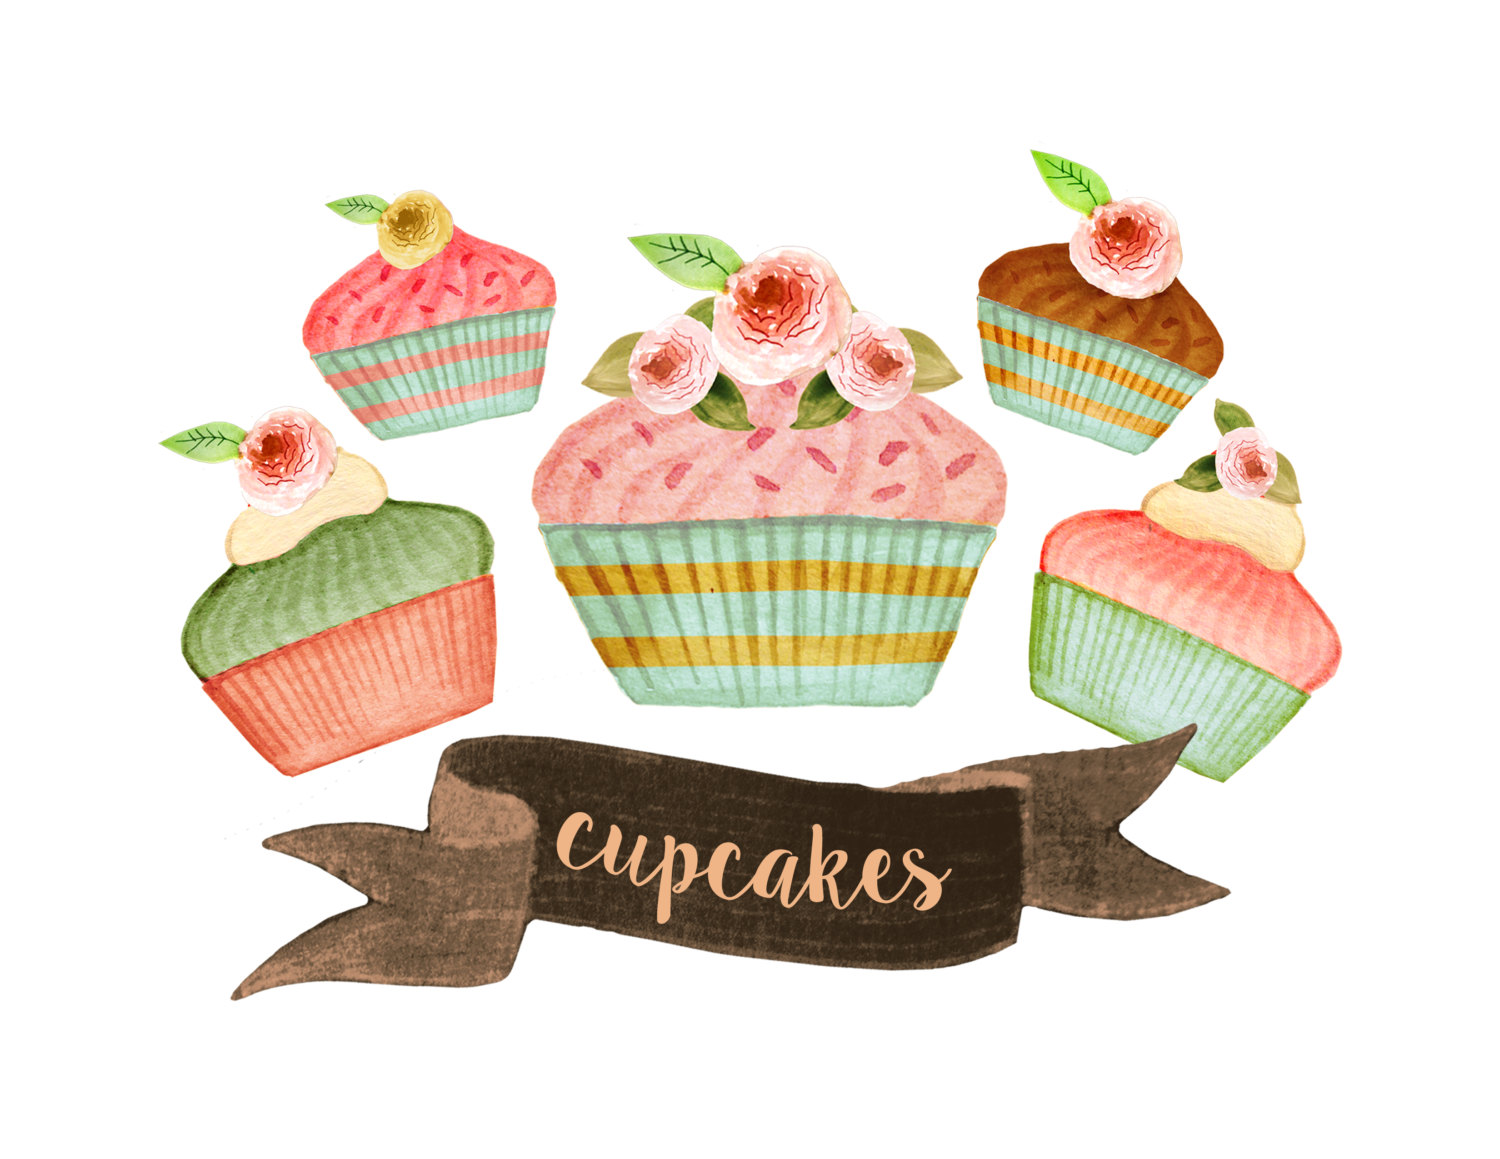 Bakery clipart baked goods. Cupcake tea party cakes